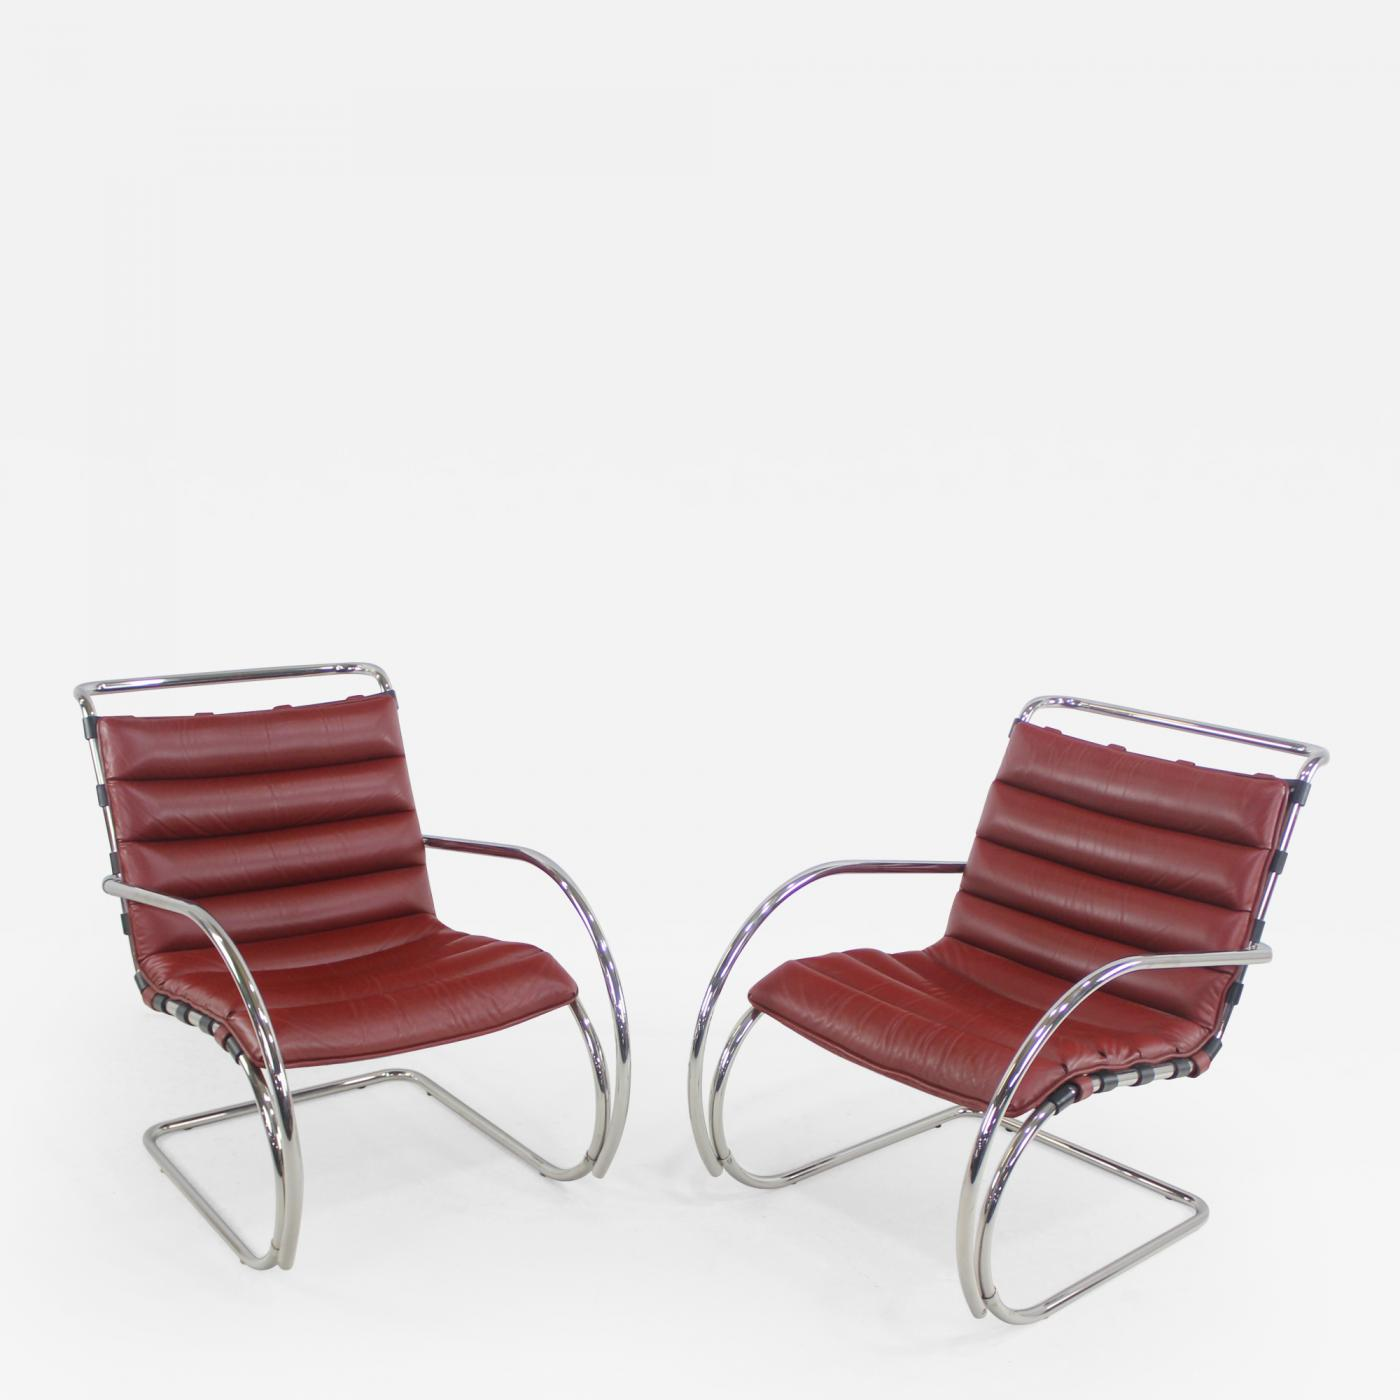 Remarkable Ludwig Mies Van Der Rohe Classic Mid Century Modern Chrome Leather Lounge Chairs By Mies Van Der Rohe Pdpeps Interior Chair Design Pdpepsorg